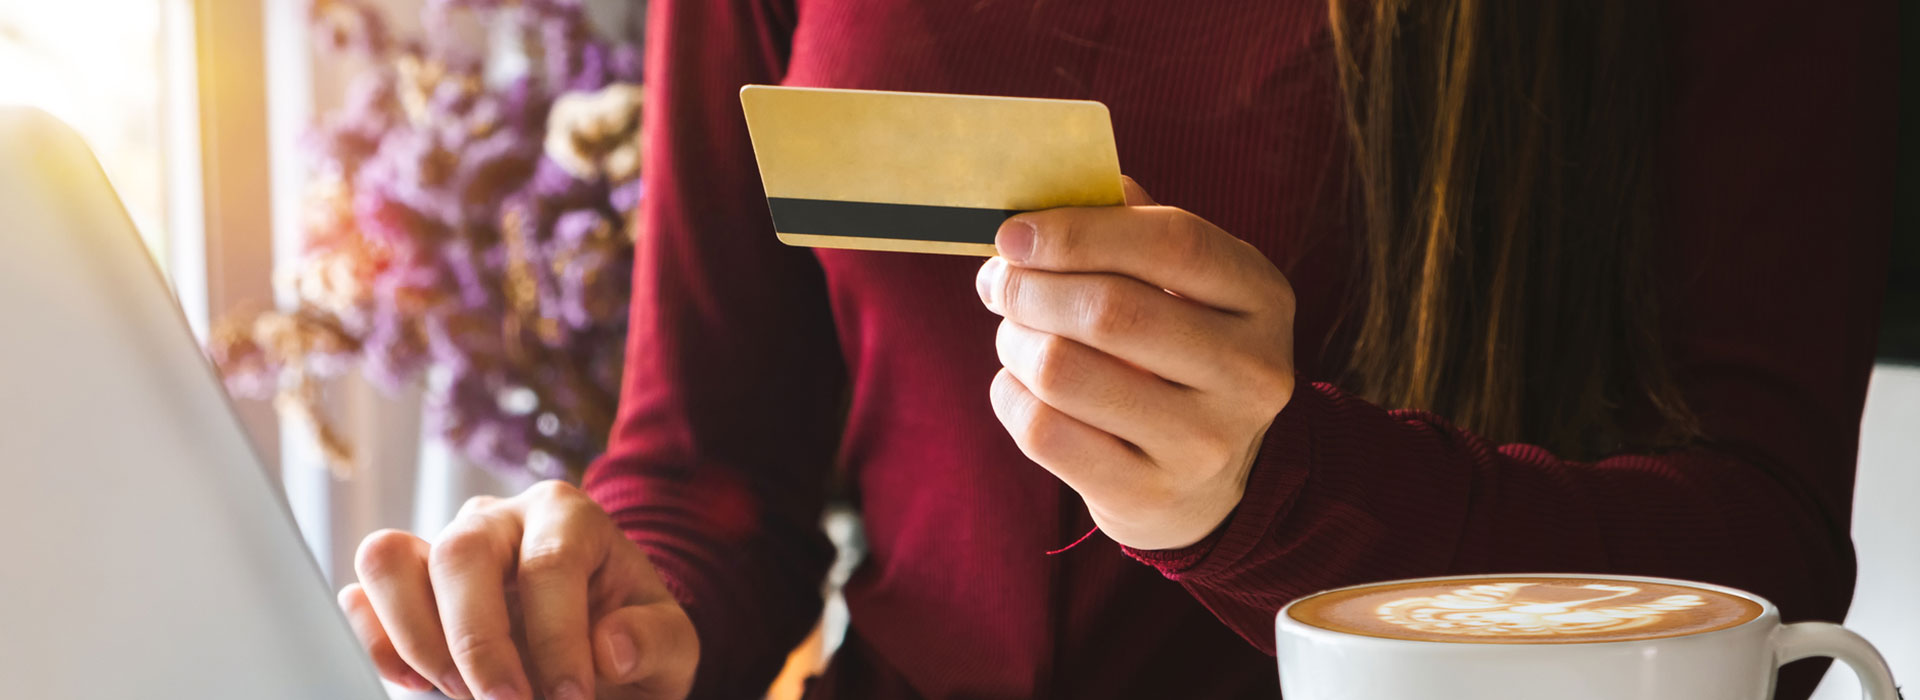 A woman is using her credit card for dental payments